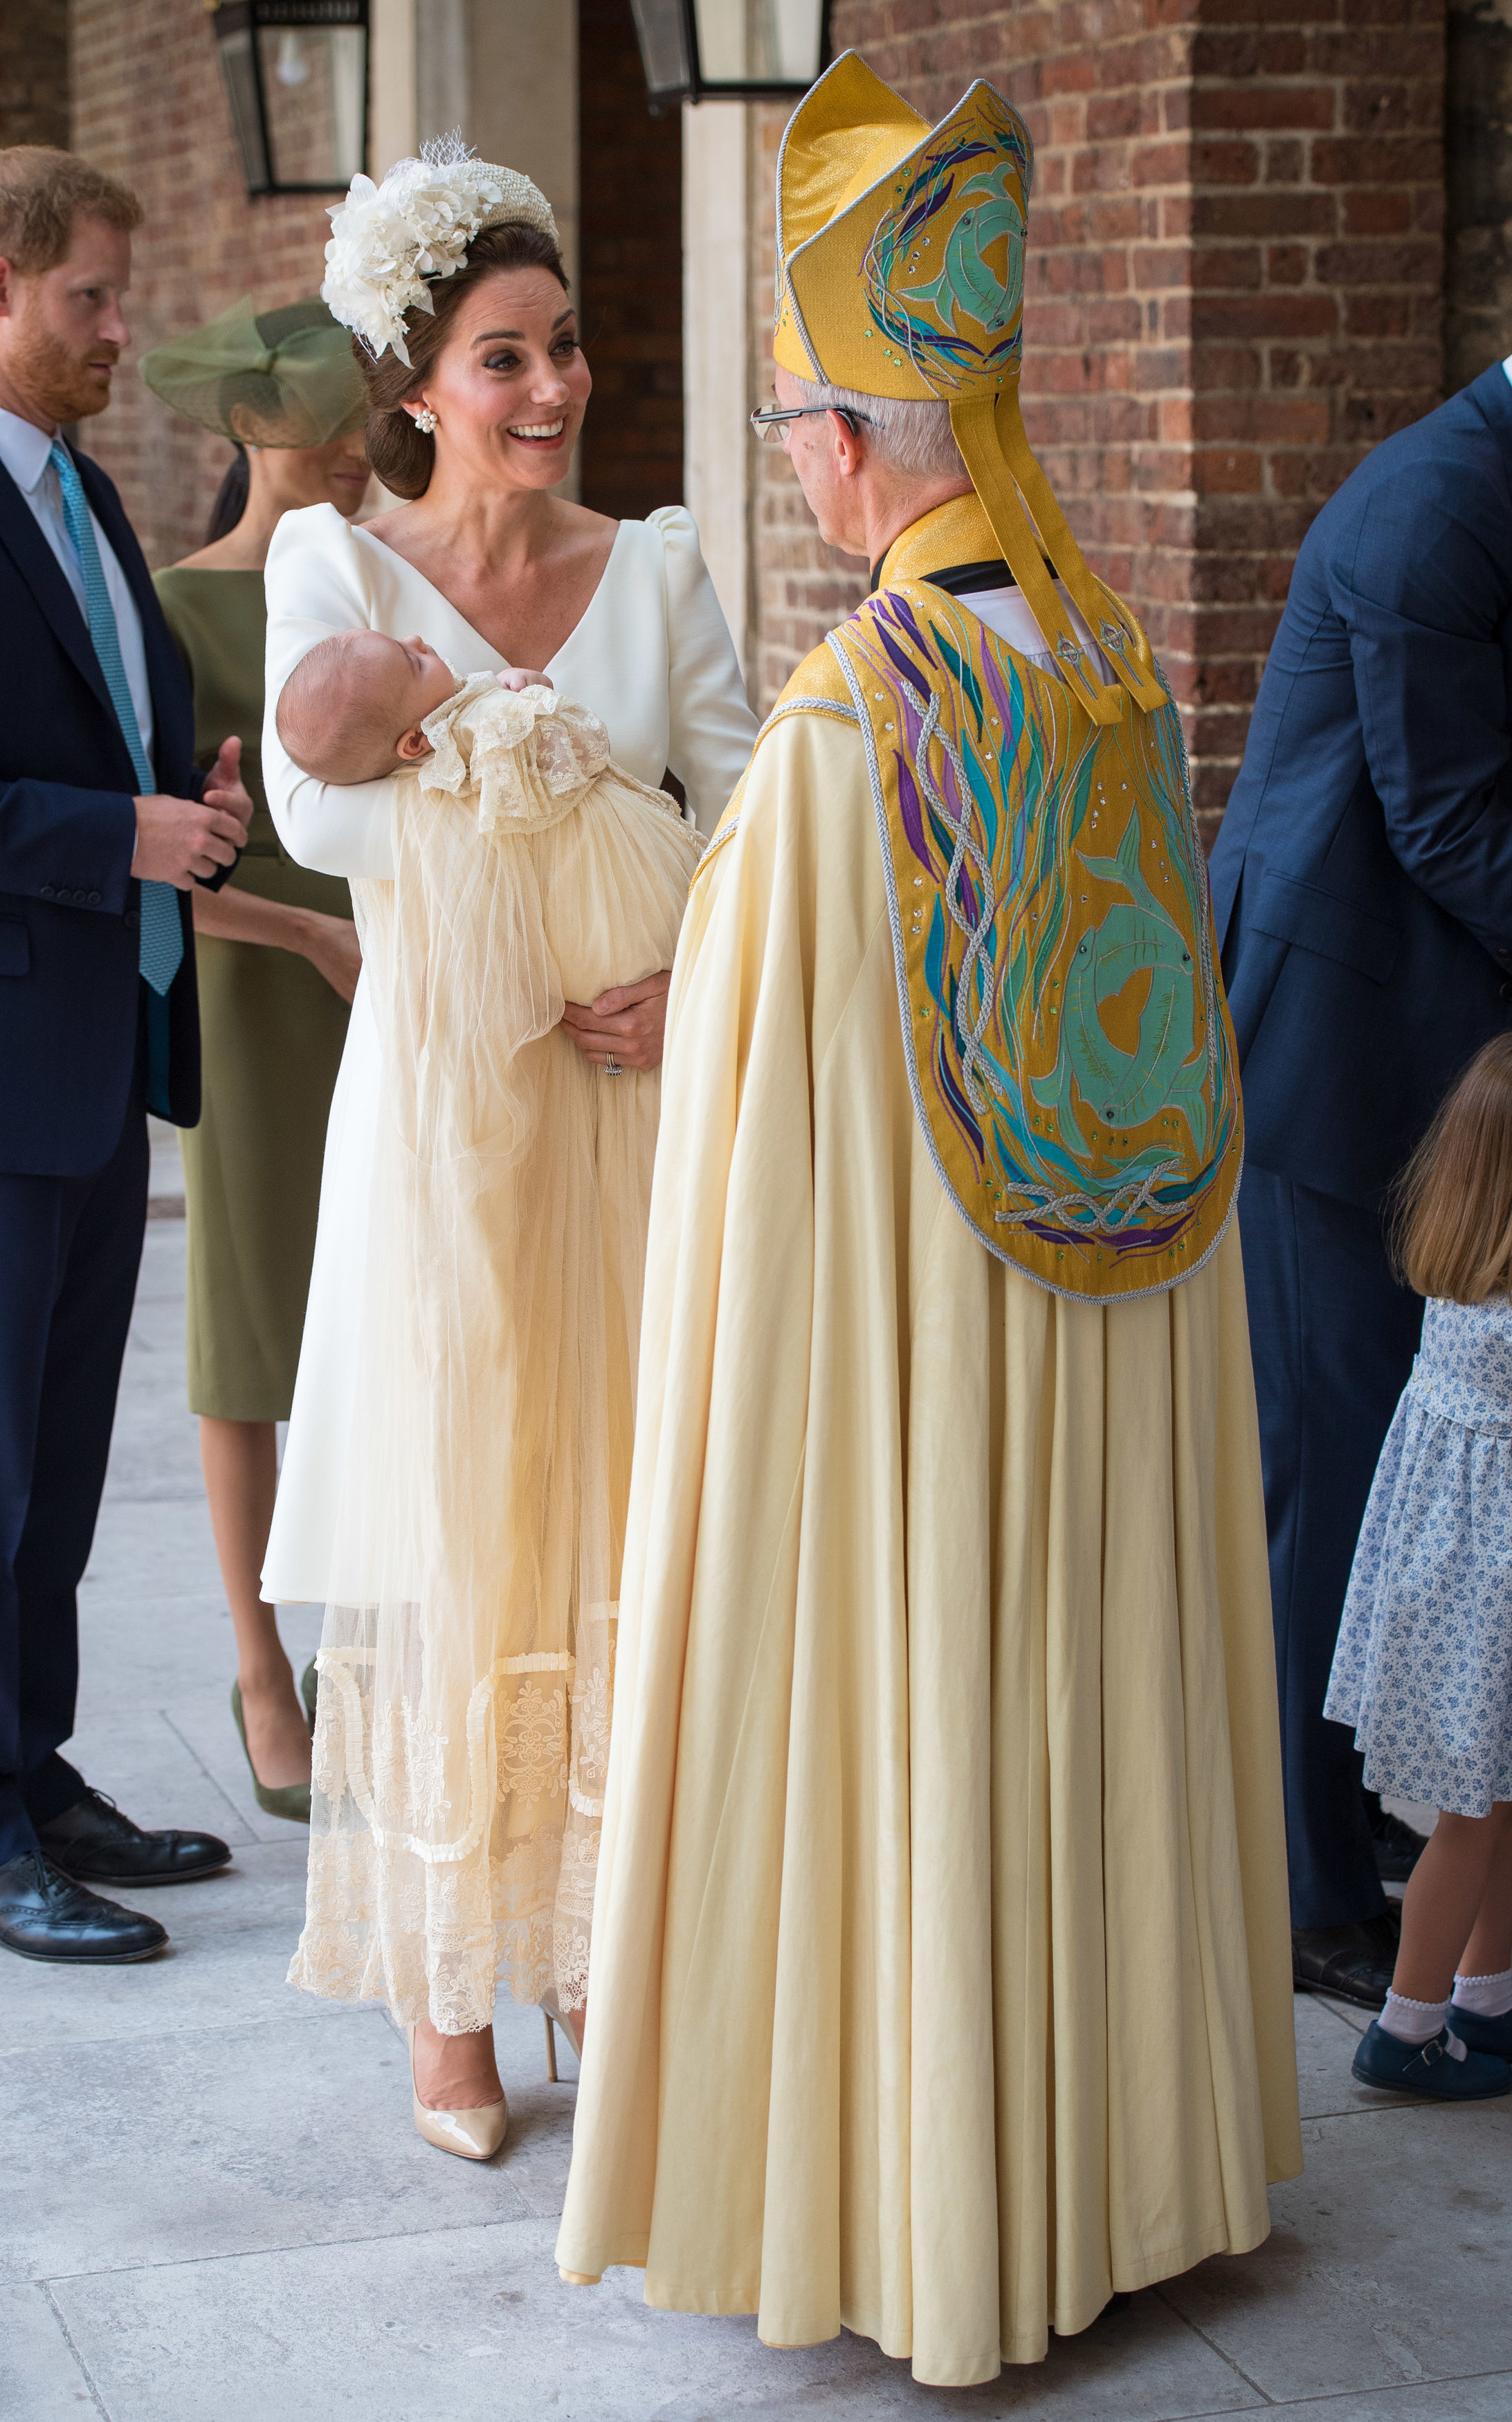 christening-of-prince-louis-of-cambridge-at-st-jamess-palace-3